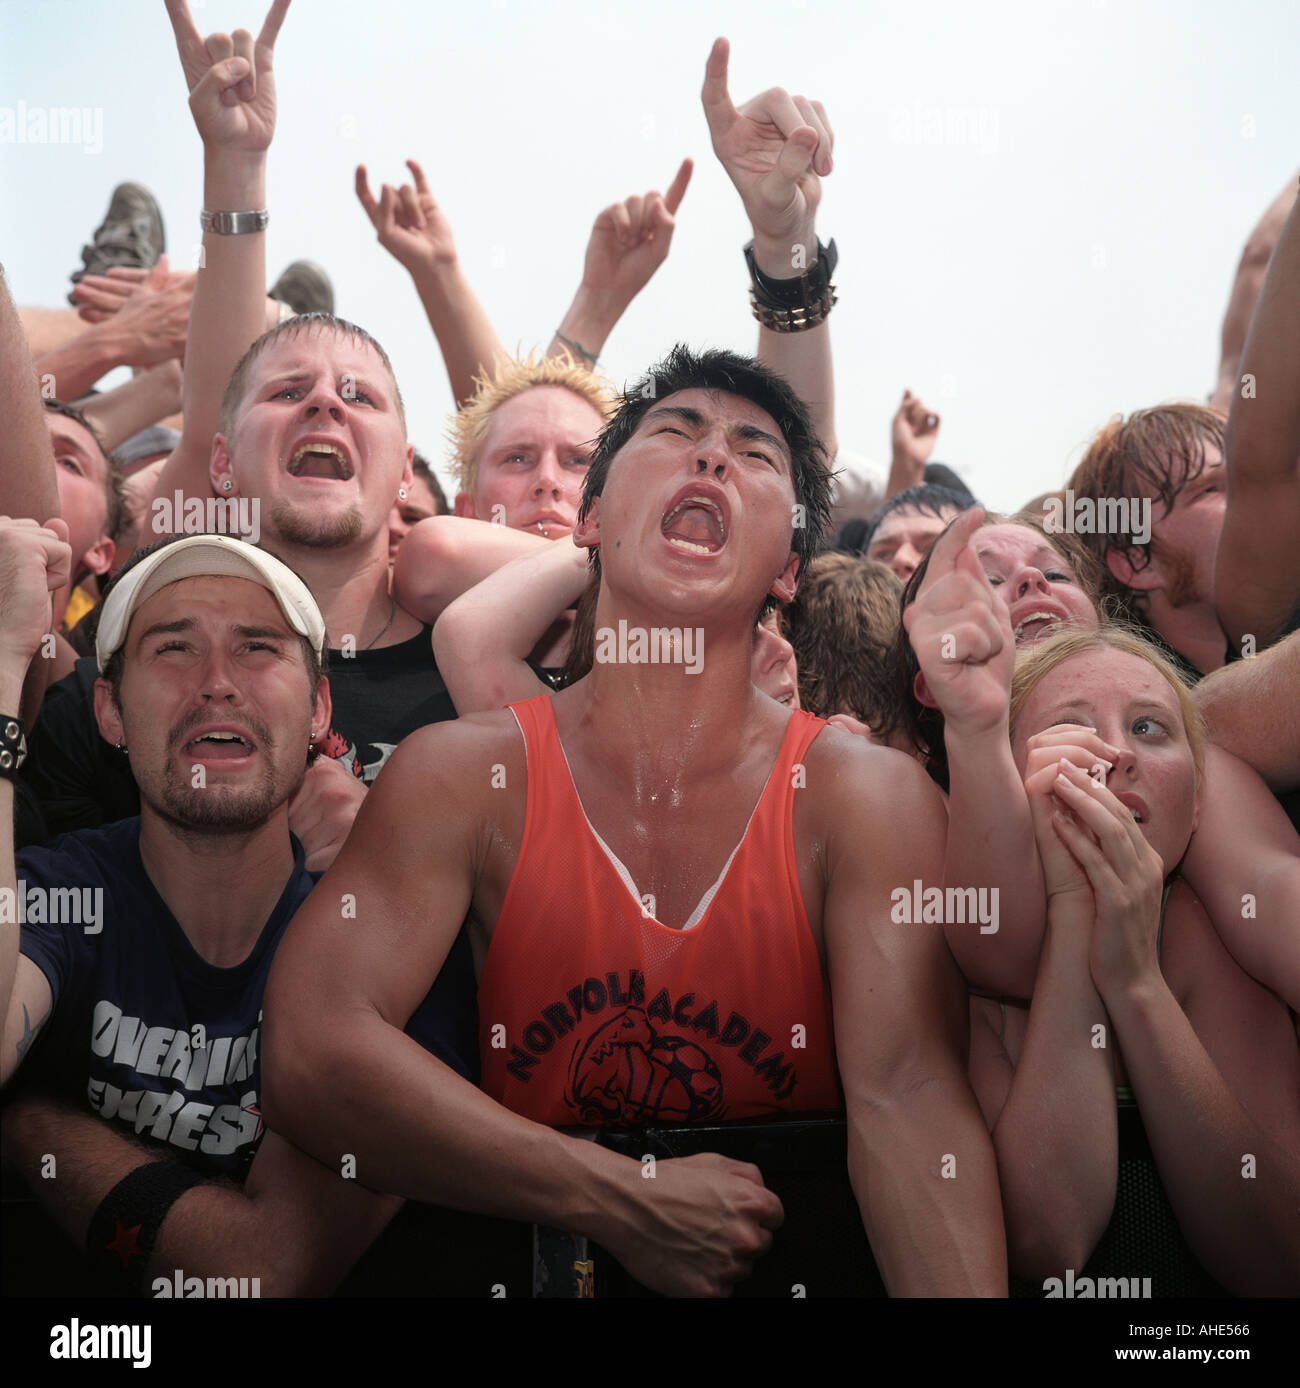 American punk rock fans in the mosh pit of an outdoor punk festival, the Warped Tour, Virginia, USA. - Stock Image